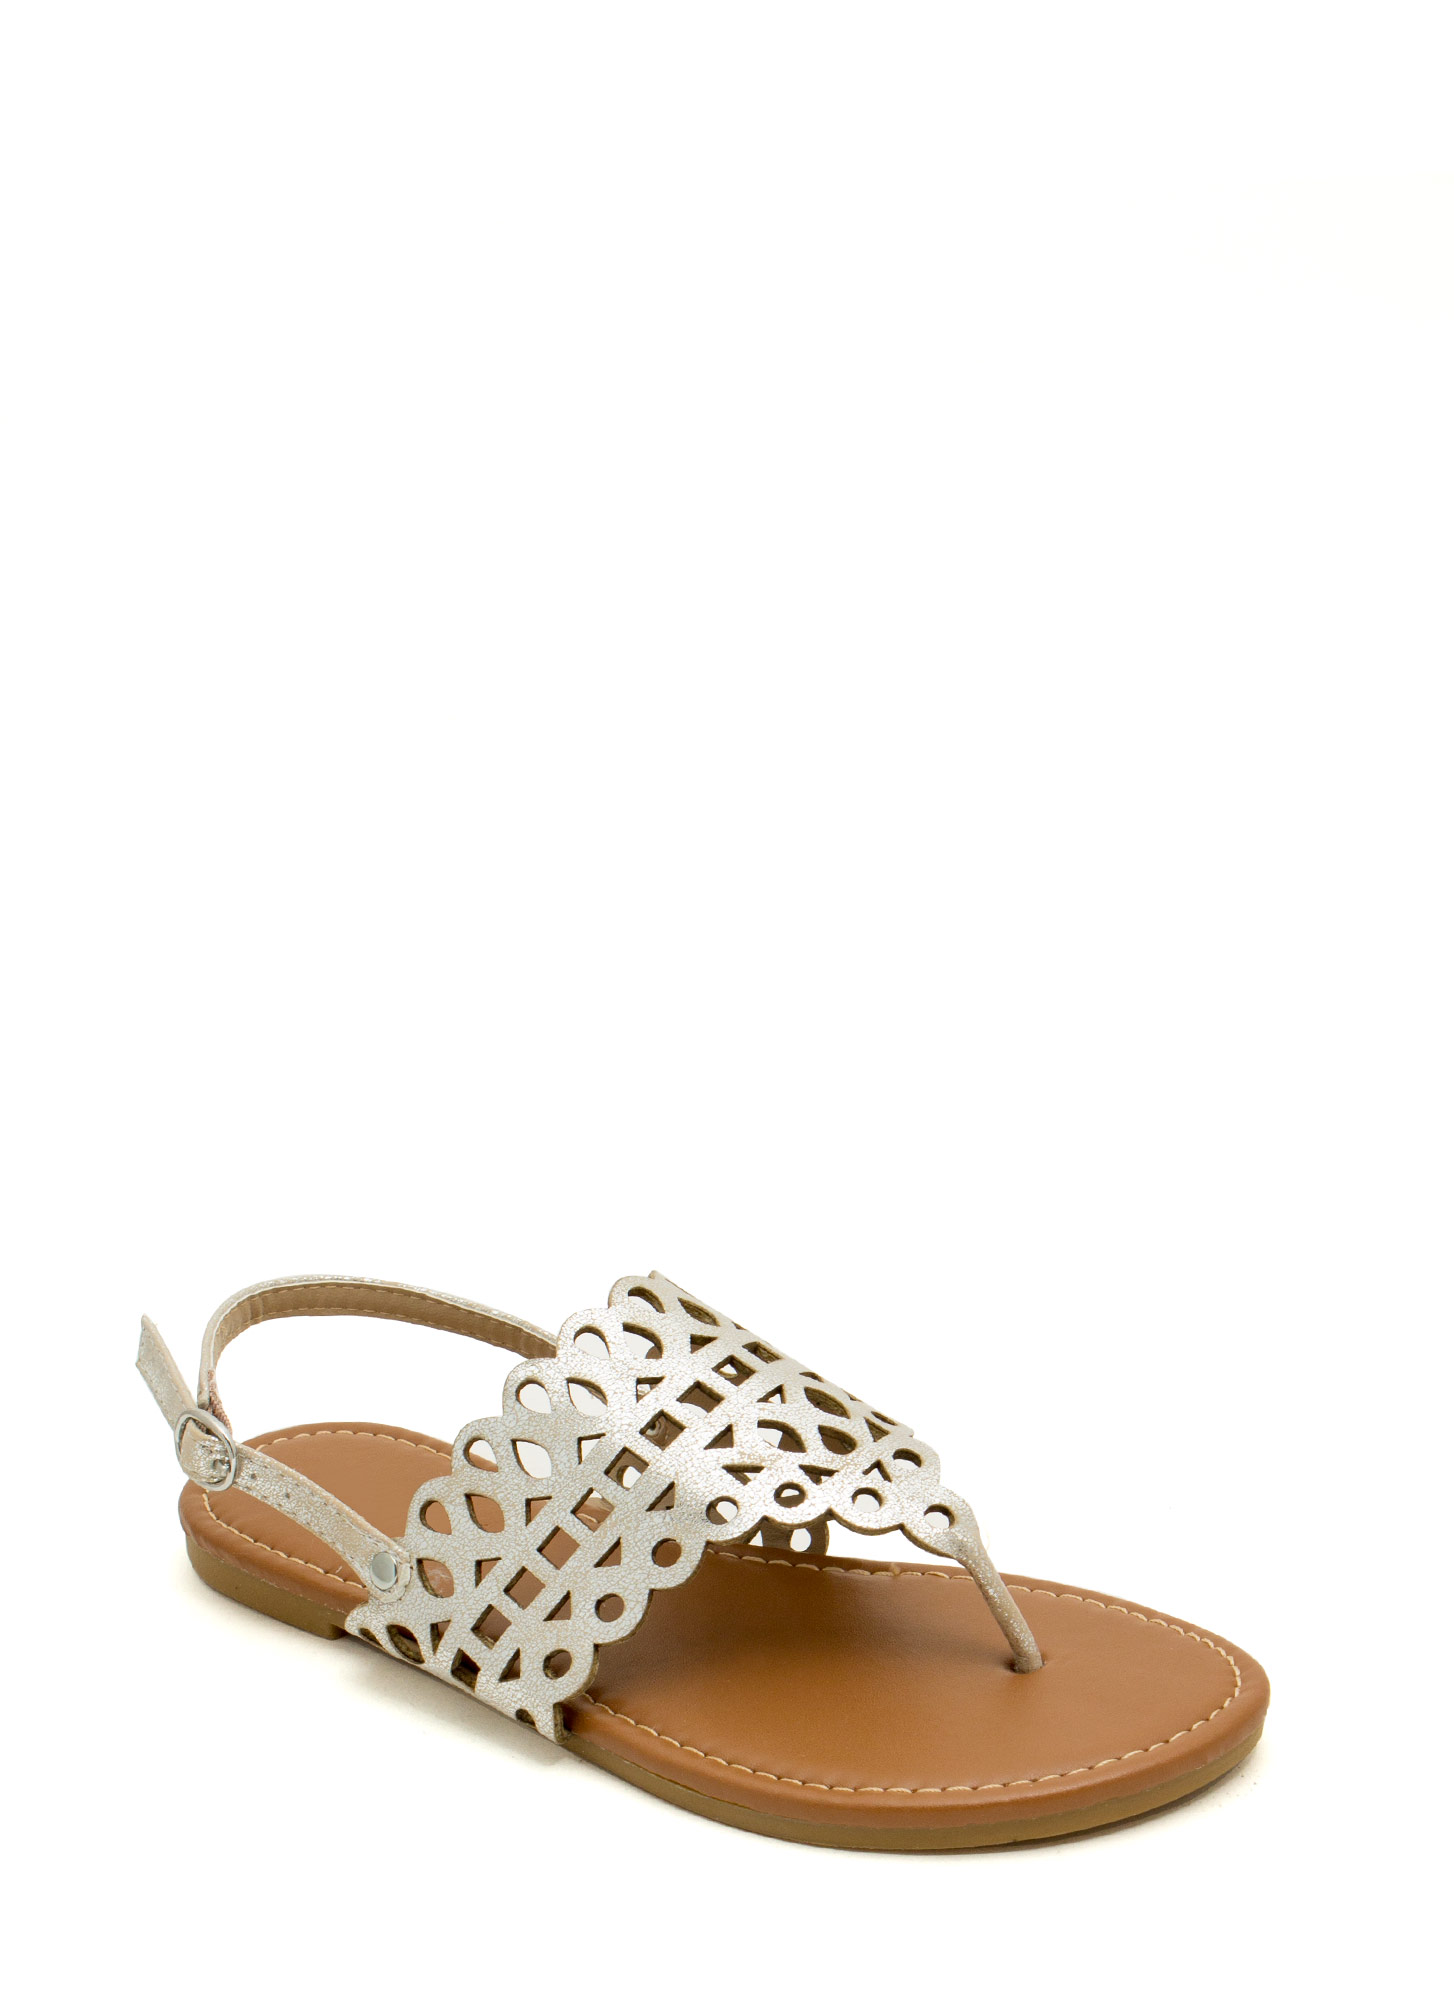 Made The Cut-Out Thong Sandals SILVER